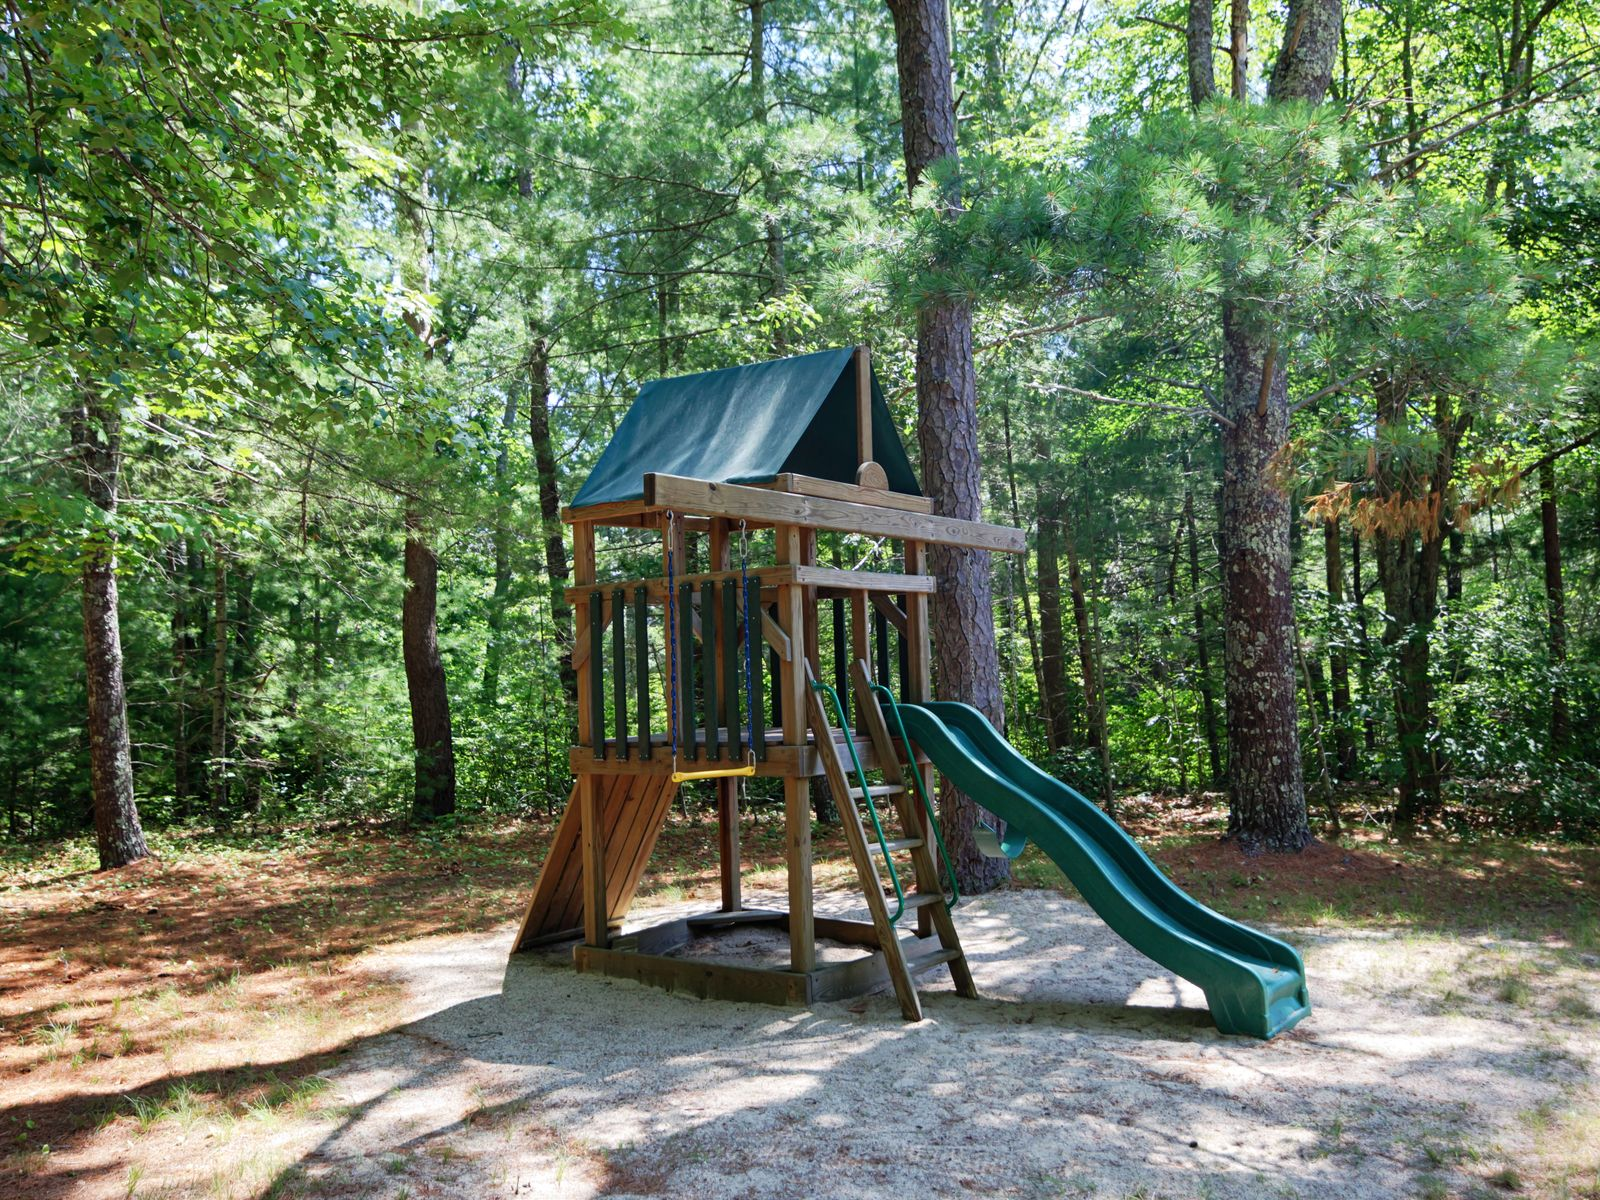 Buildable Lot in Desirable Lochstead